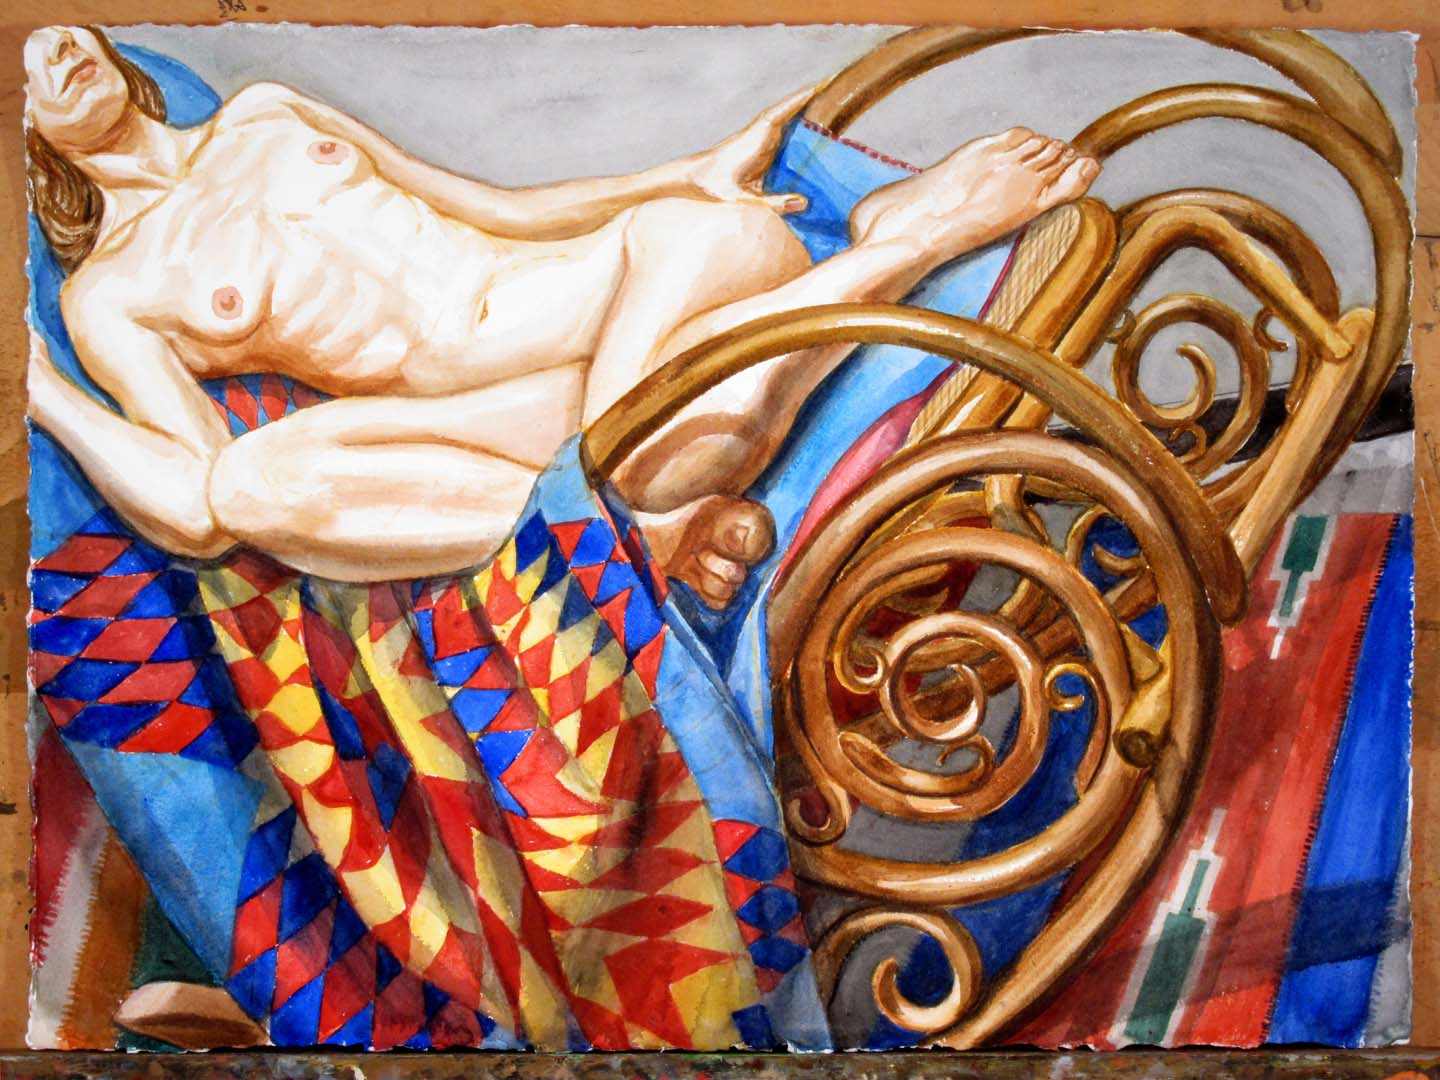 """2011 Model with Star Patterned Quilt on Rocker Watercolor on Paper 22.5"""" x 30.25"""""""